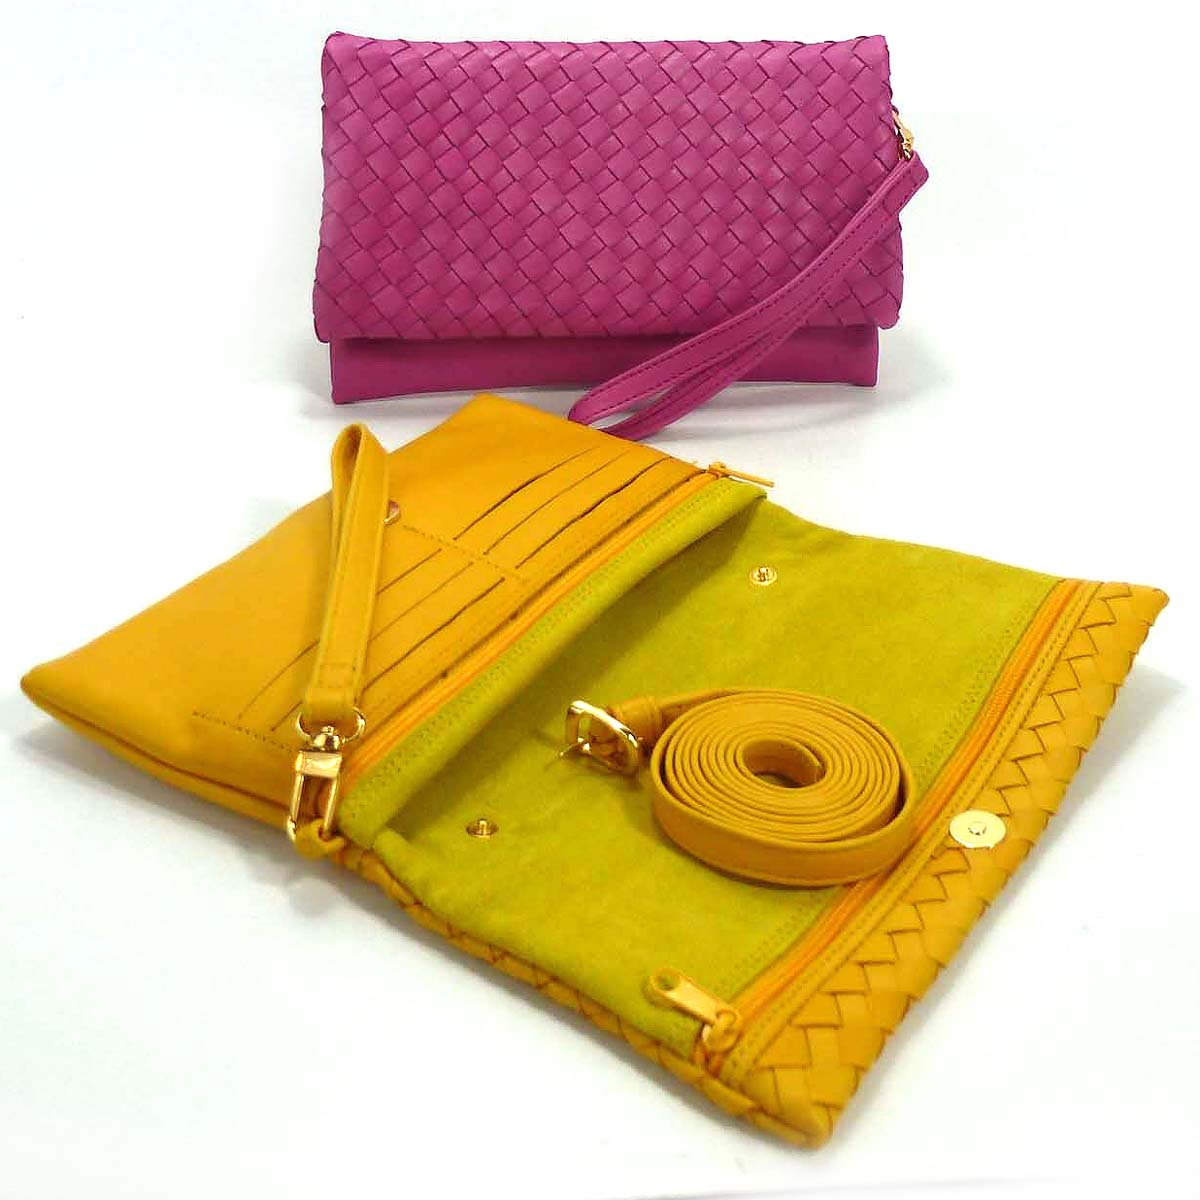 1739 clutch bag with detachable handle by Bottega Fiorentina